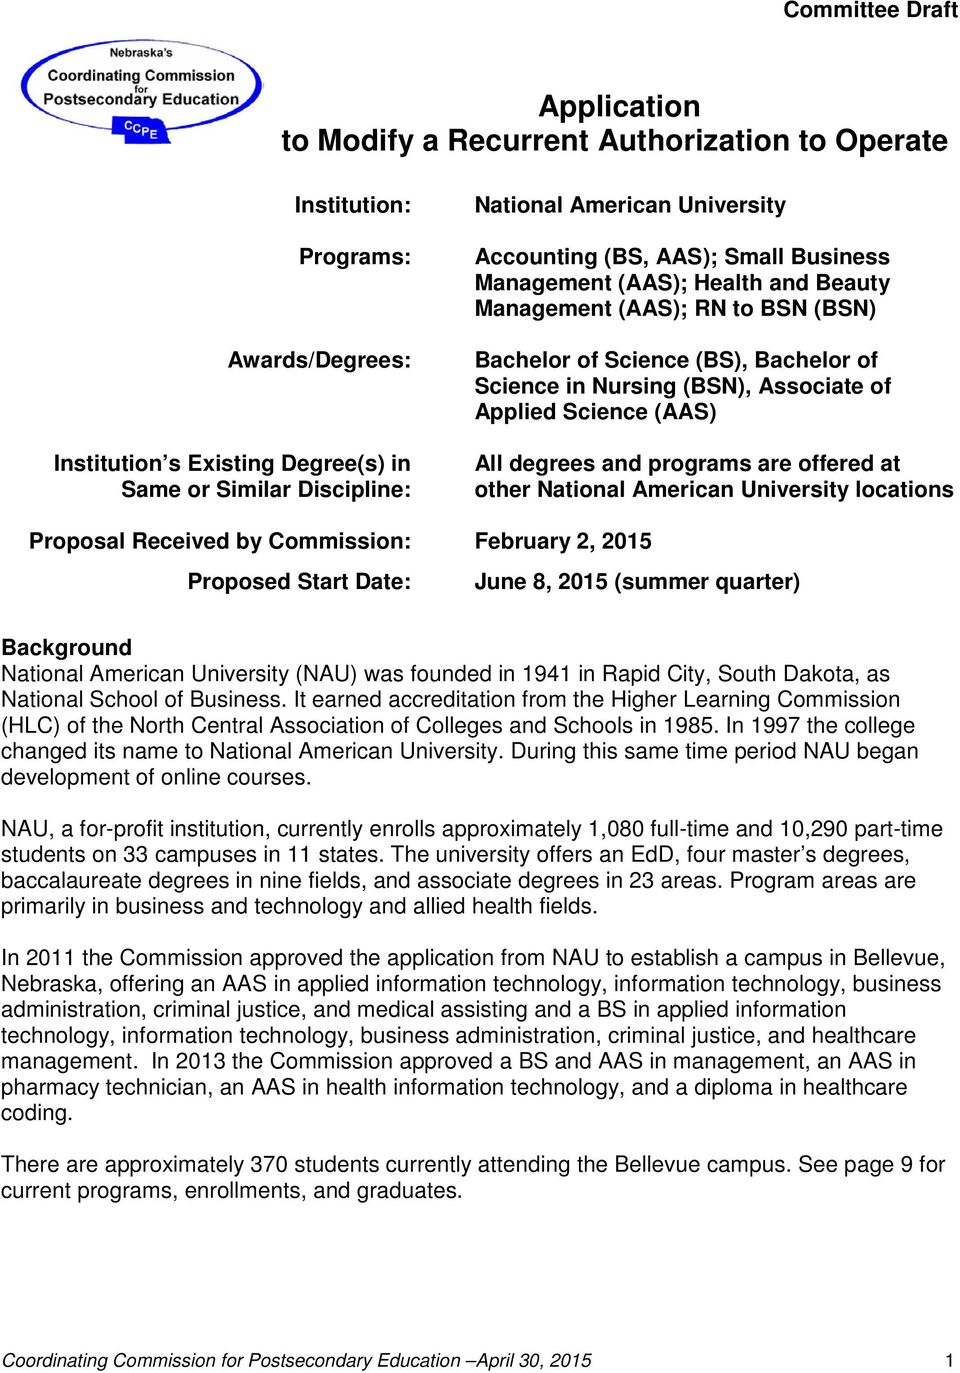 (AAS) All degrees and programs are offered at other National American University locations Proposal Received by Commission: February 2, 2015 Proposed Start Date: June 8, 2015 (summer ) Background